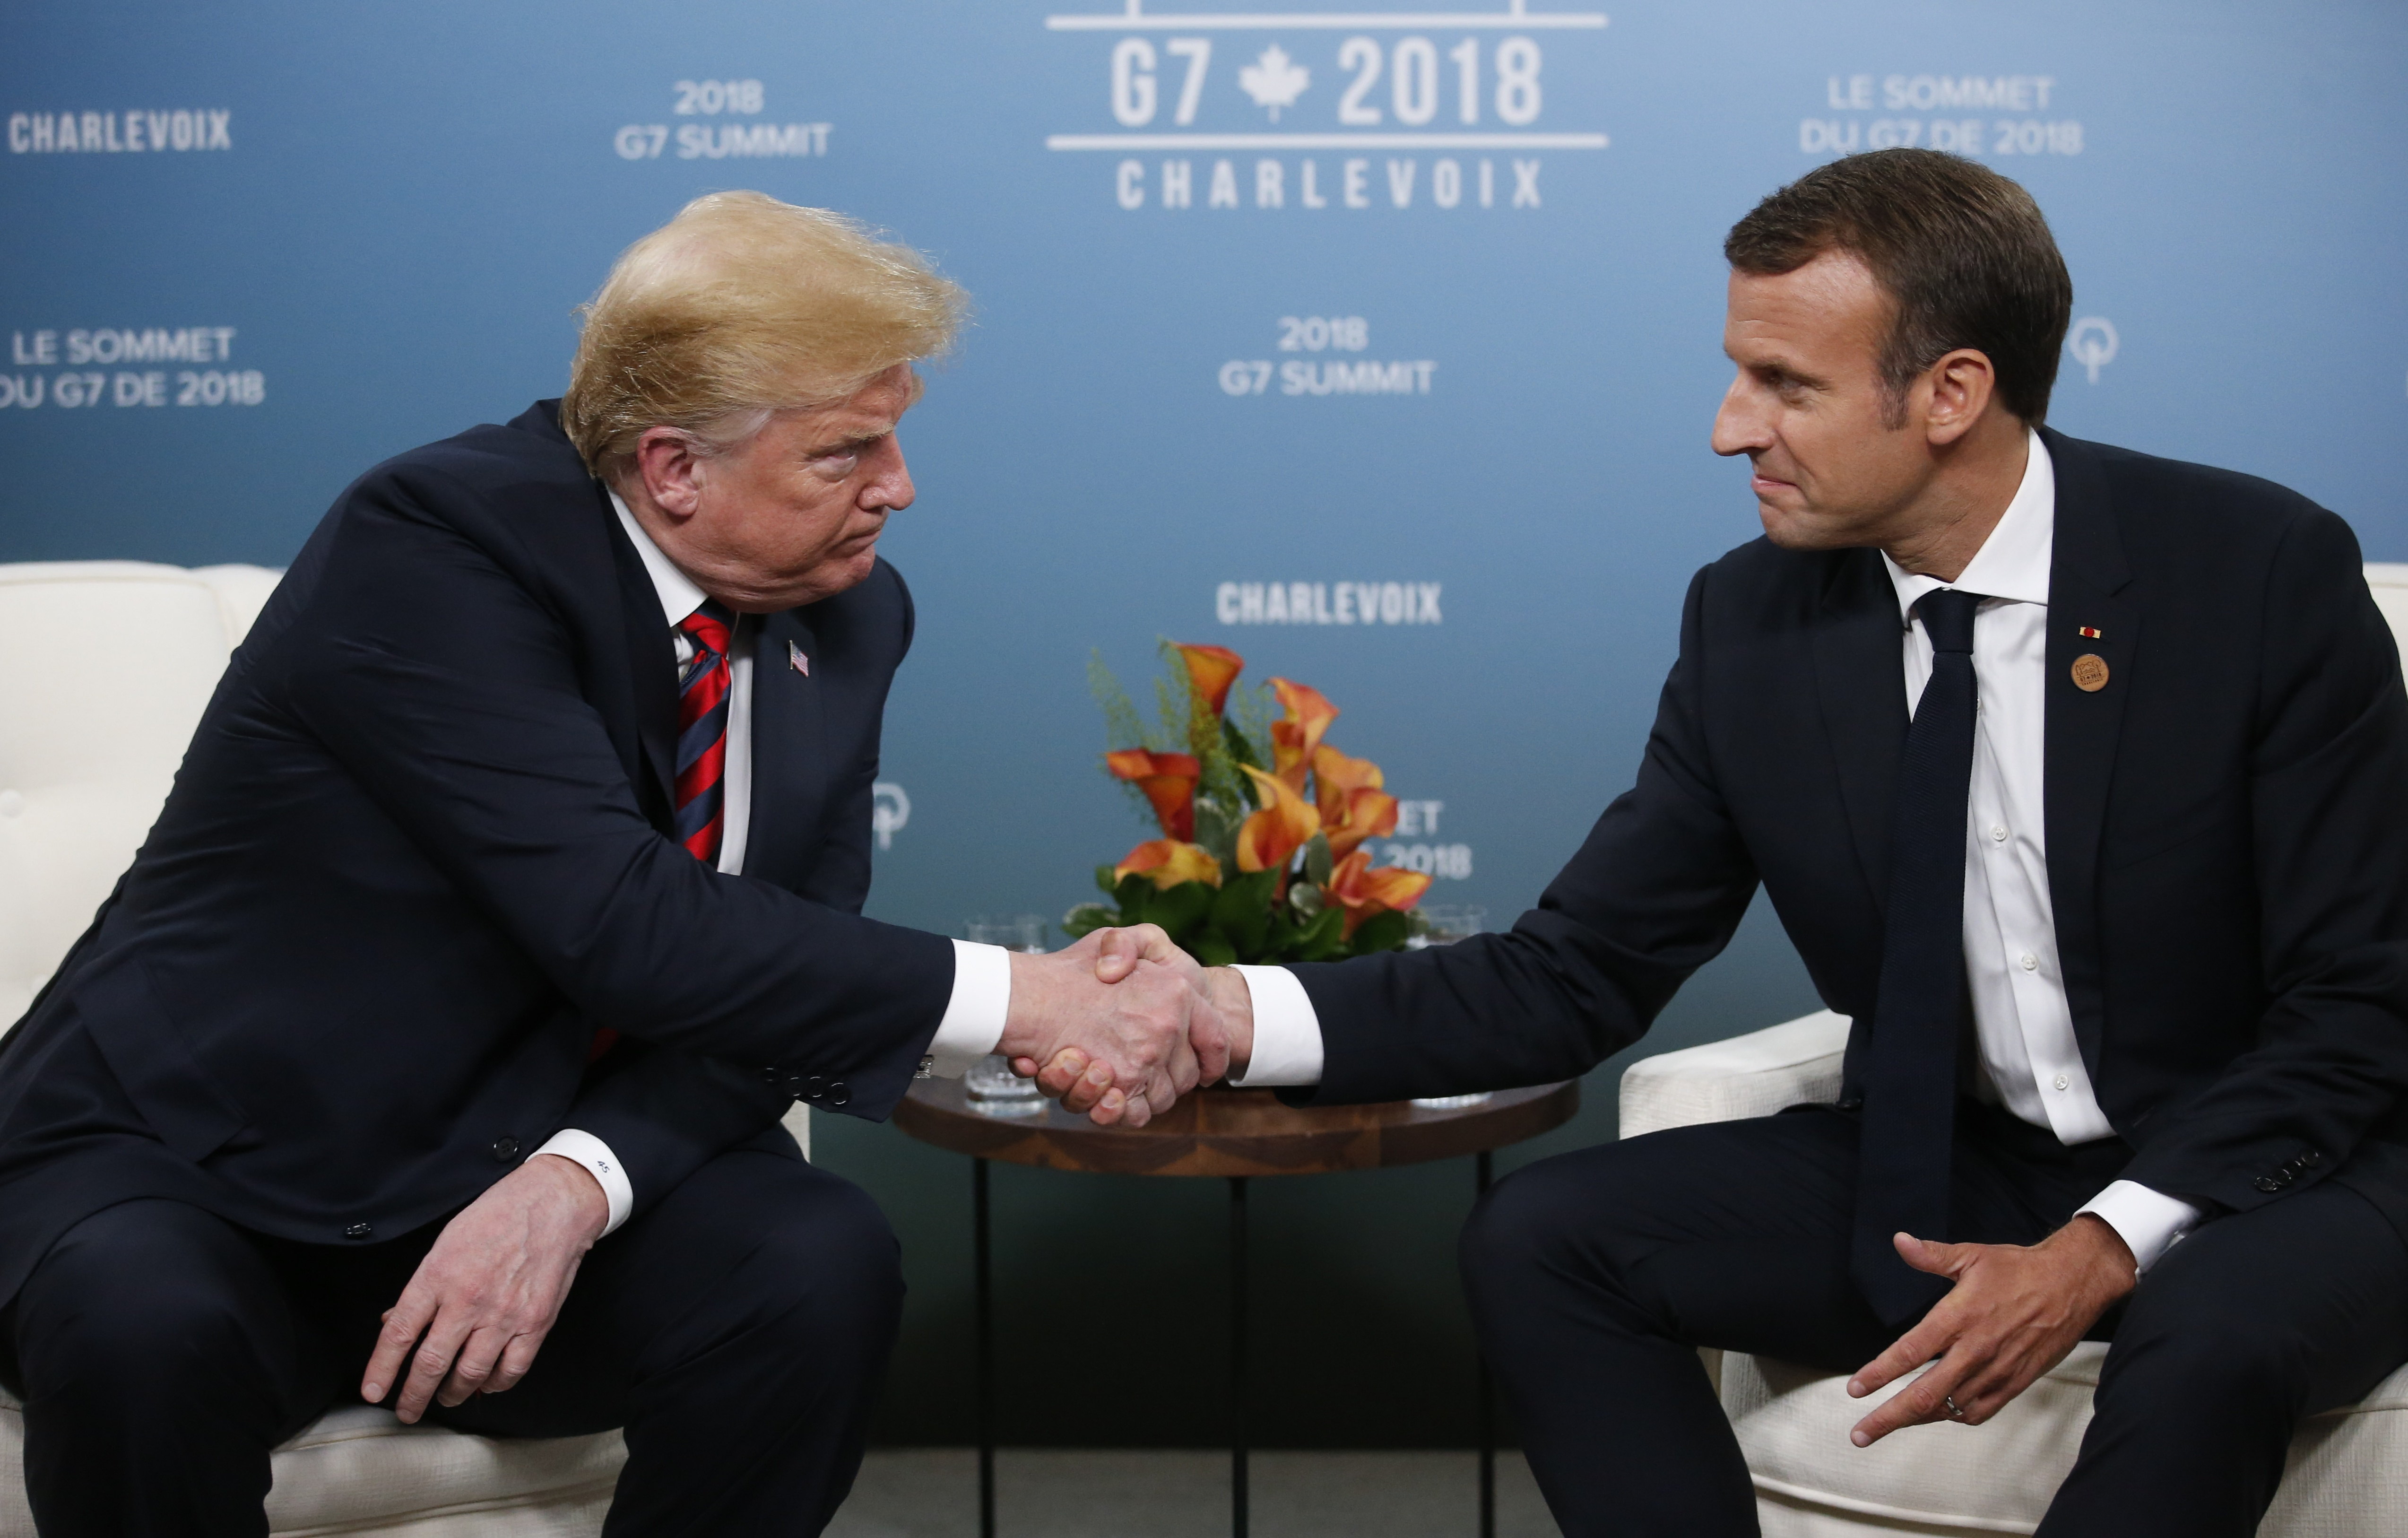 U.S. President Donald Trump shakes hands with France's President Emmanuel Macron during a bilateral meeting at the G7 Summit in in Charlevoix, Quebec, Canada,